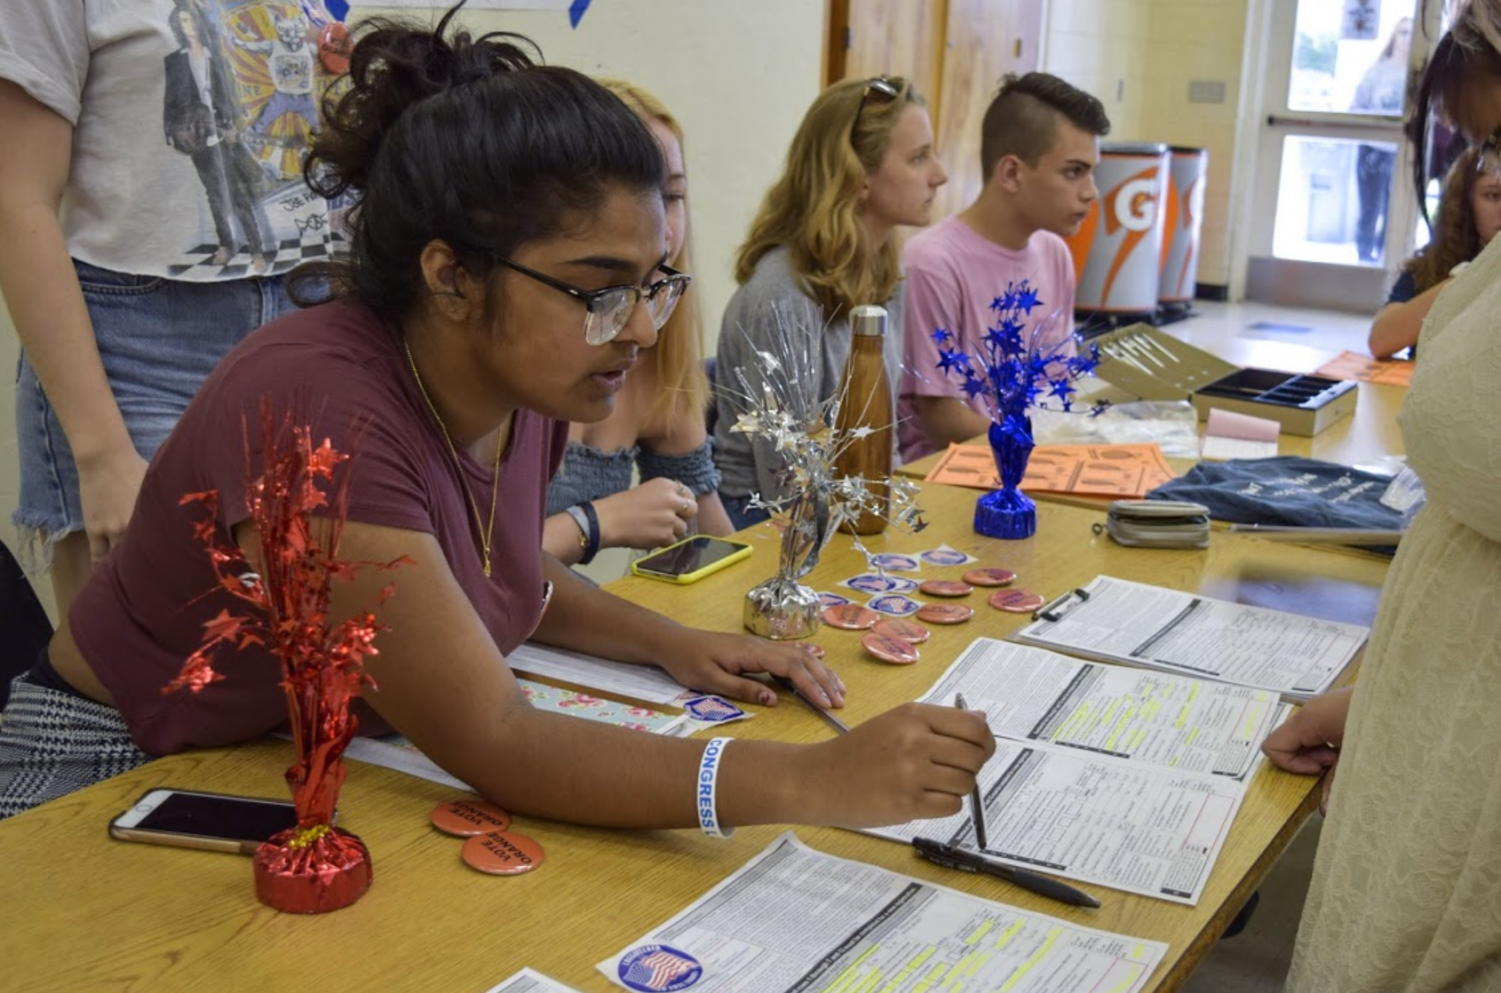 Communications senior Kavyasree Chigurupati instructs a student registering to vote on Oct. 5 as part of a week-long initiative by Students Against Gun Violence to advocate for gun reform.